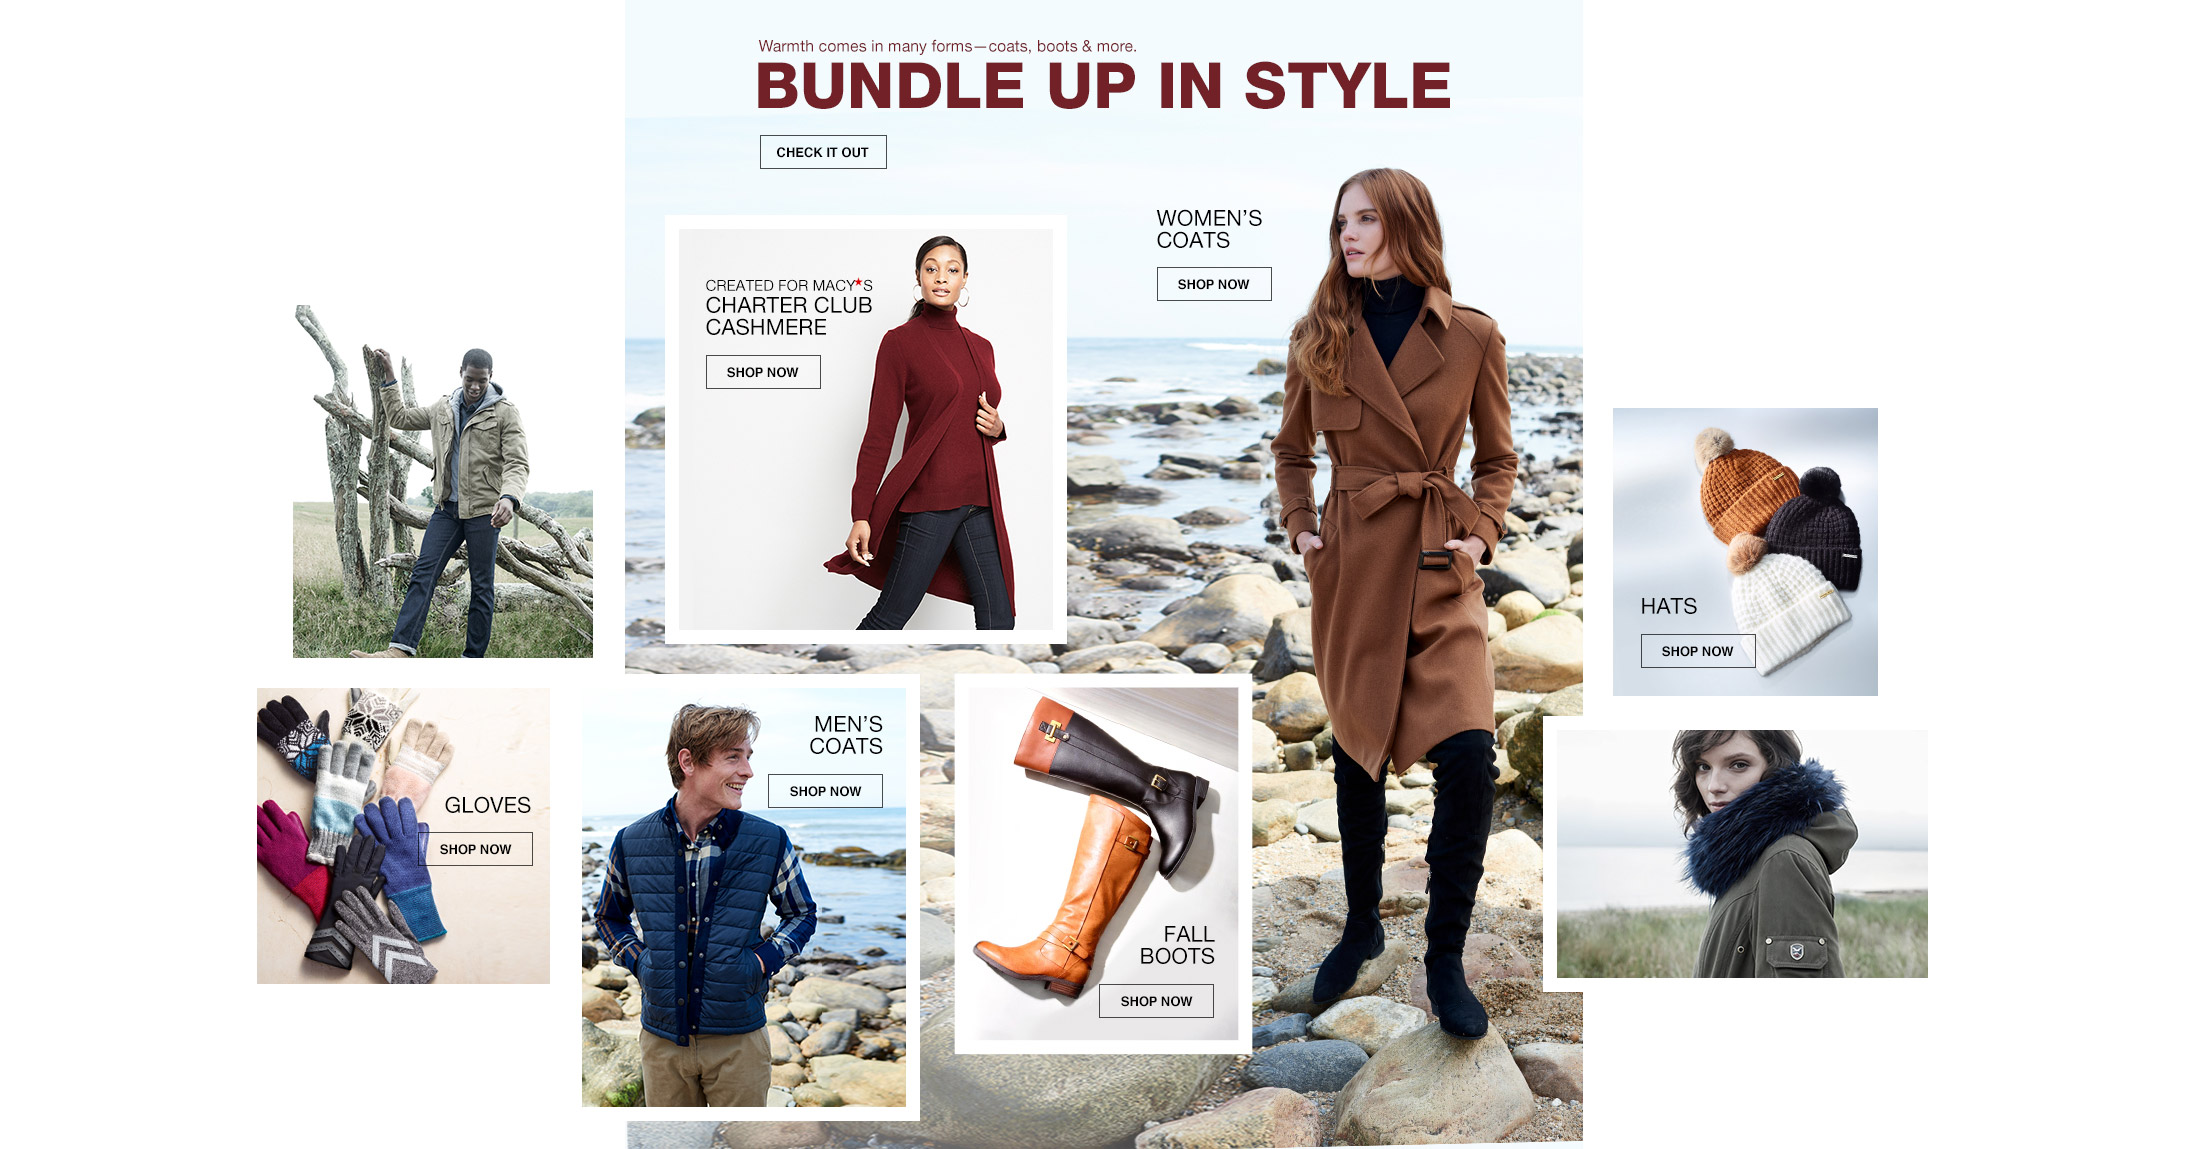 warmth comes in many forms-coats, boots and more. bundle up in style. created for macys charter club cashmere, womens coats, hats, gloves, mens coats and fall boots.